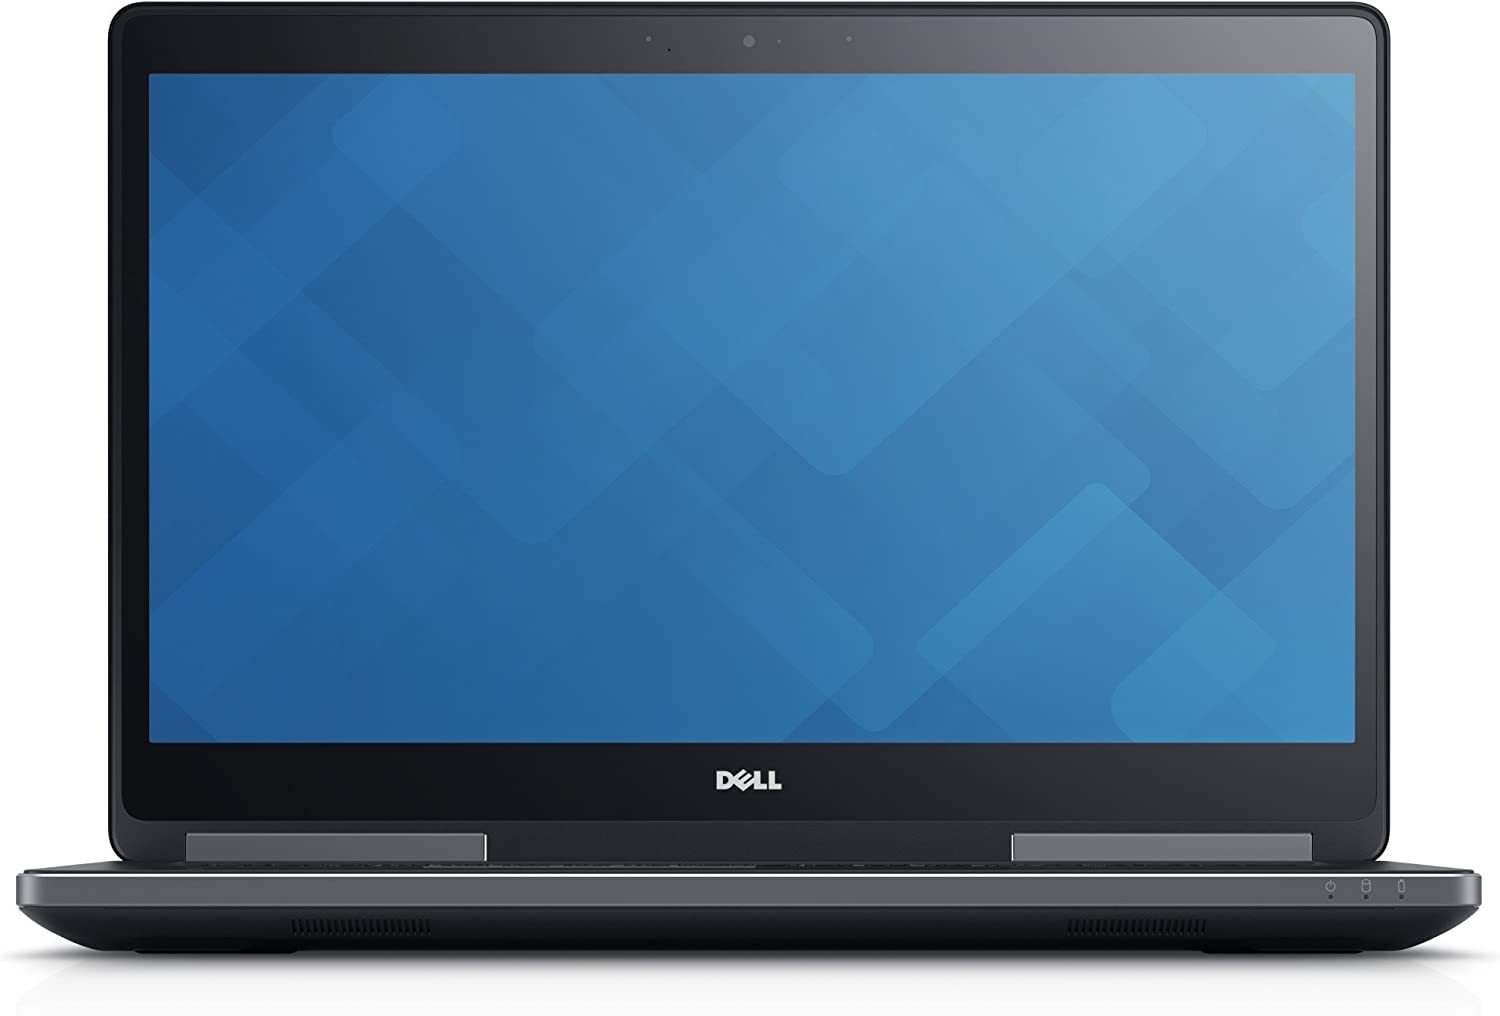 Dell PRECISION 17 M7720 FHD i7-6820HQ 32GB 512GB SSD AMD WX4130 4GB 10 PRO (Renewed)